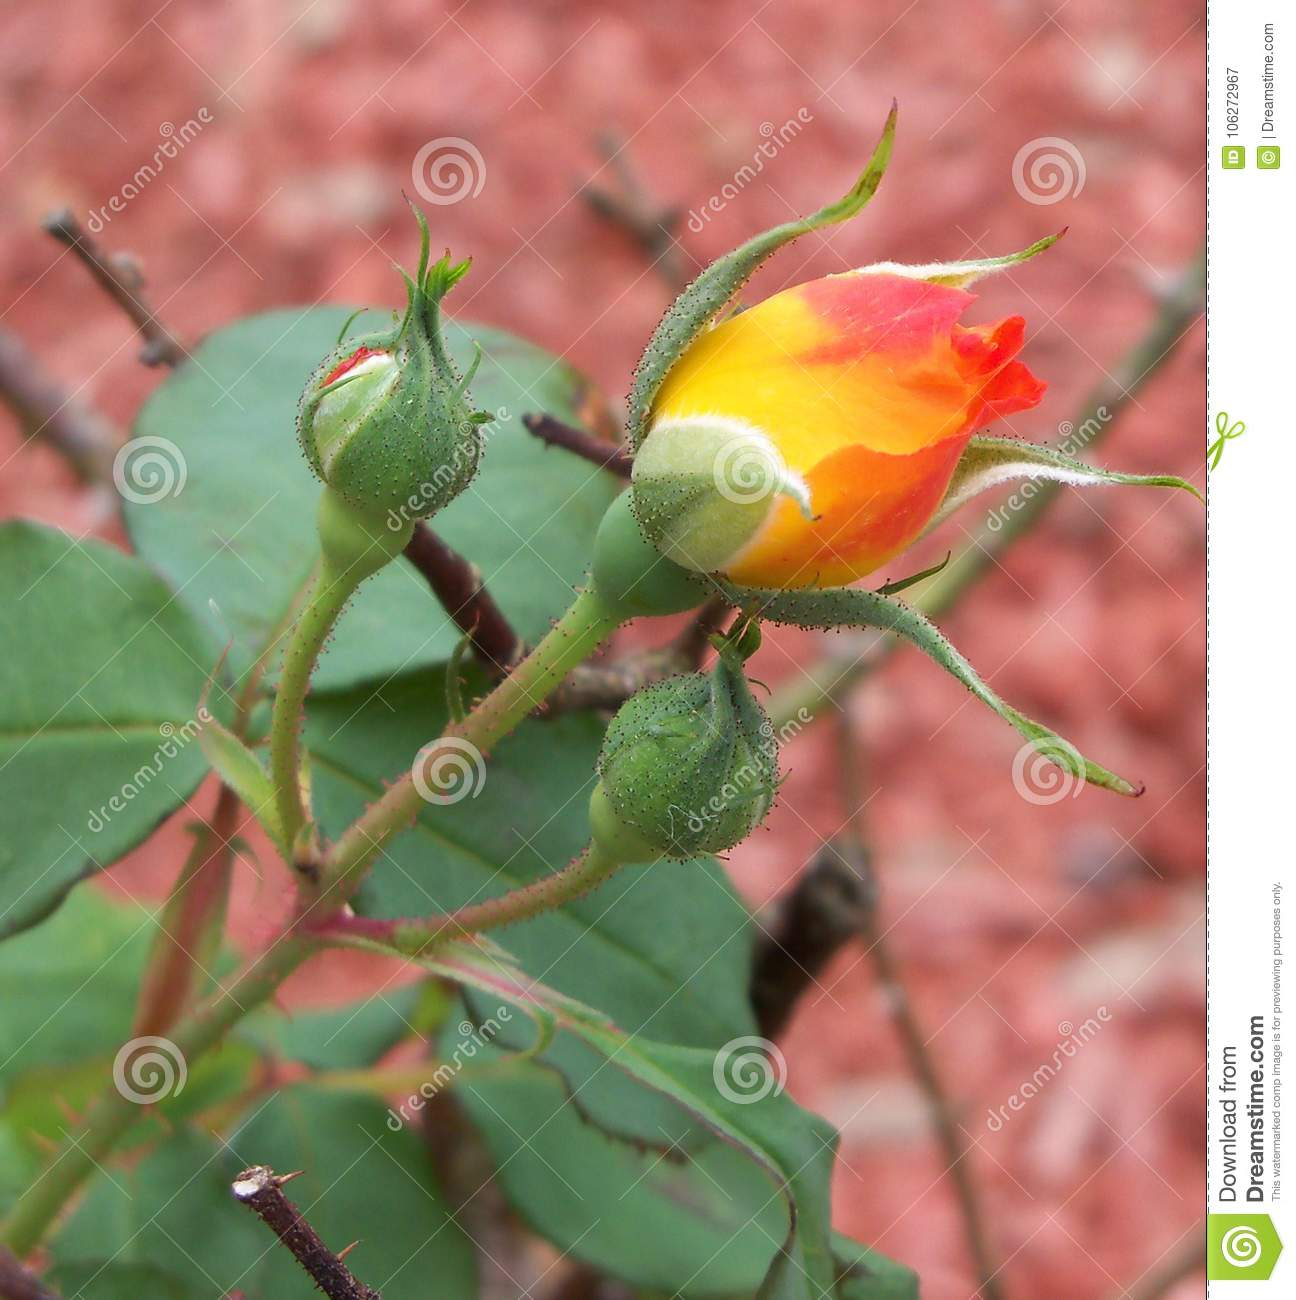 A brilliantly colored yellow and bright orange rose bud